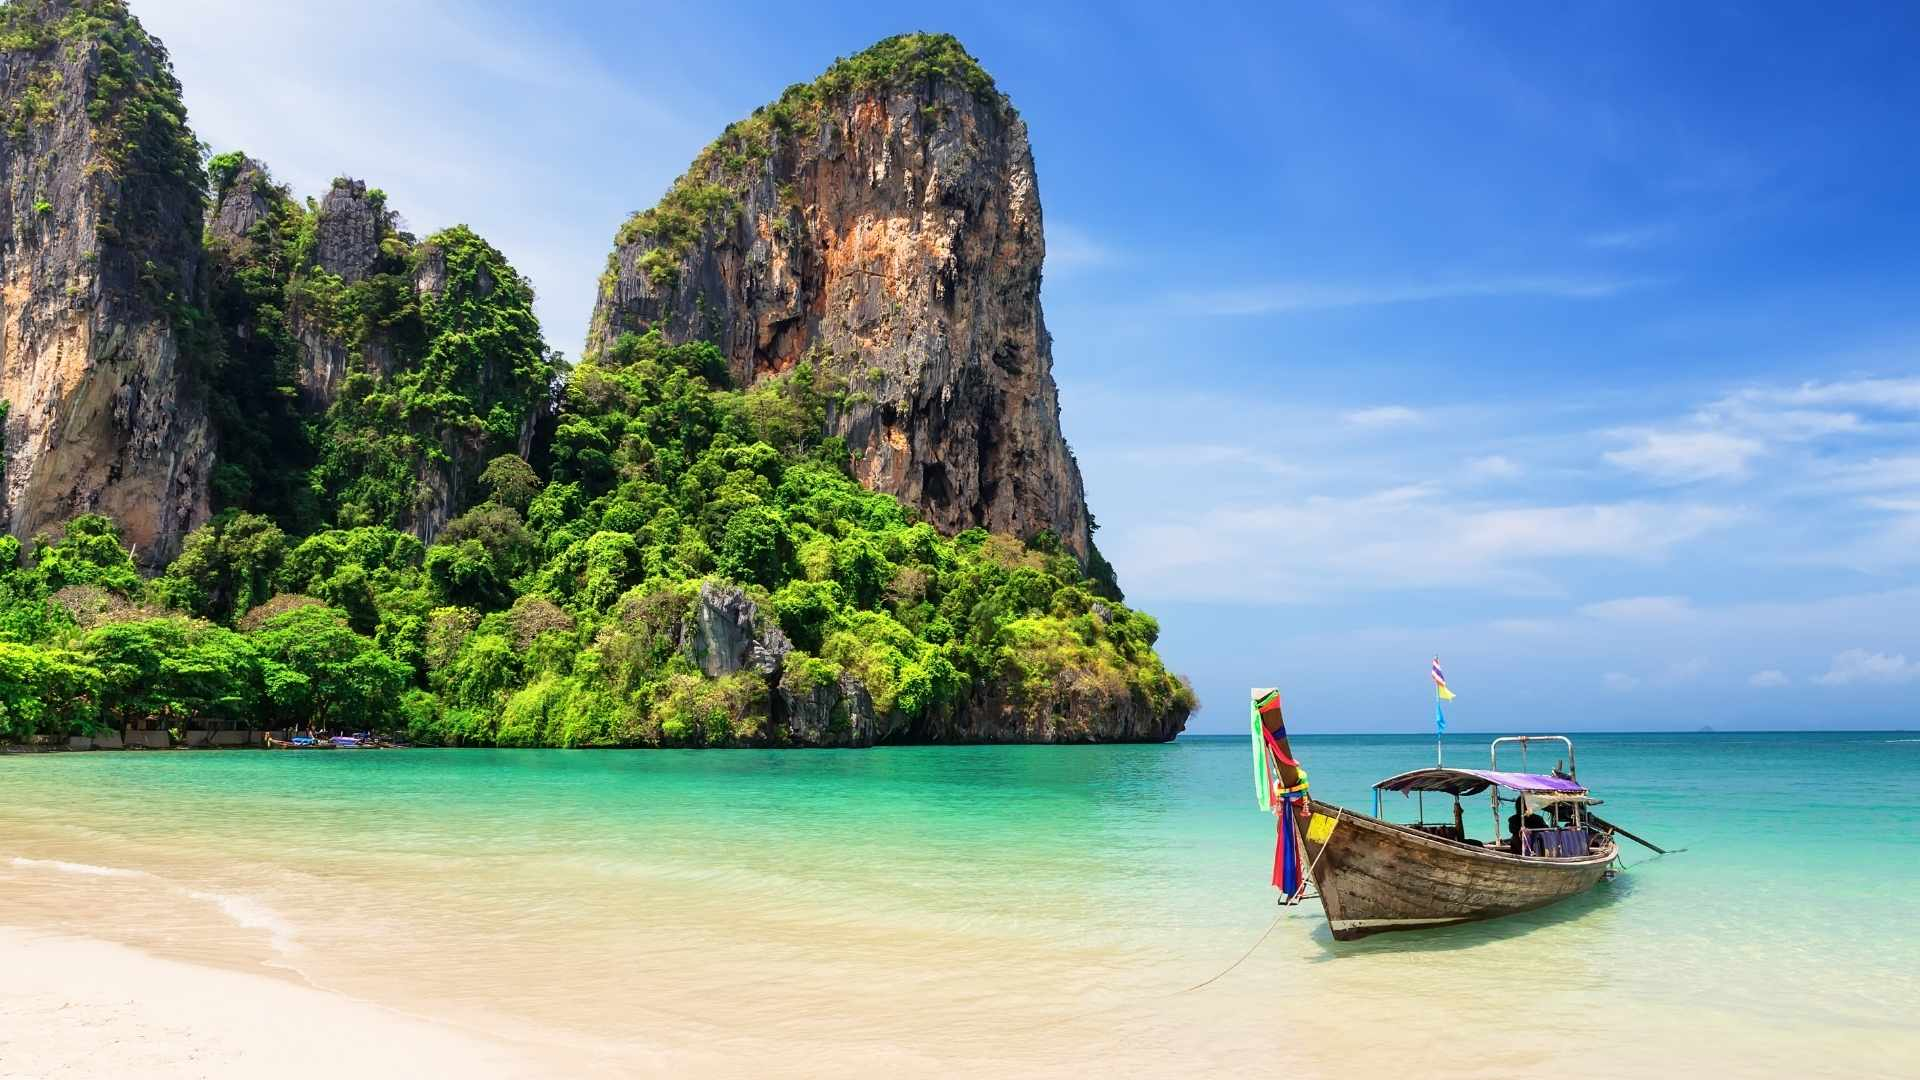 Phuket, Thailand - most scenic islands in the world